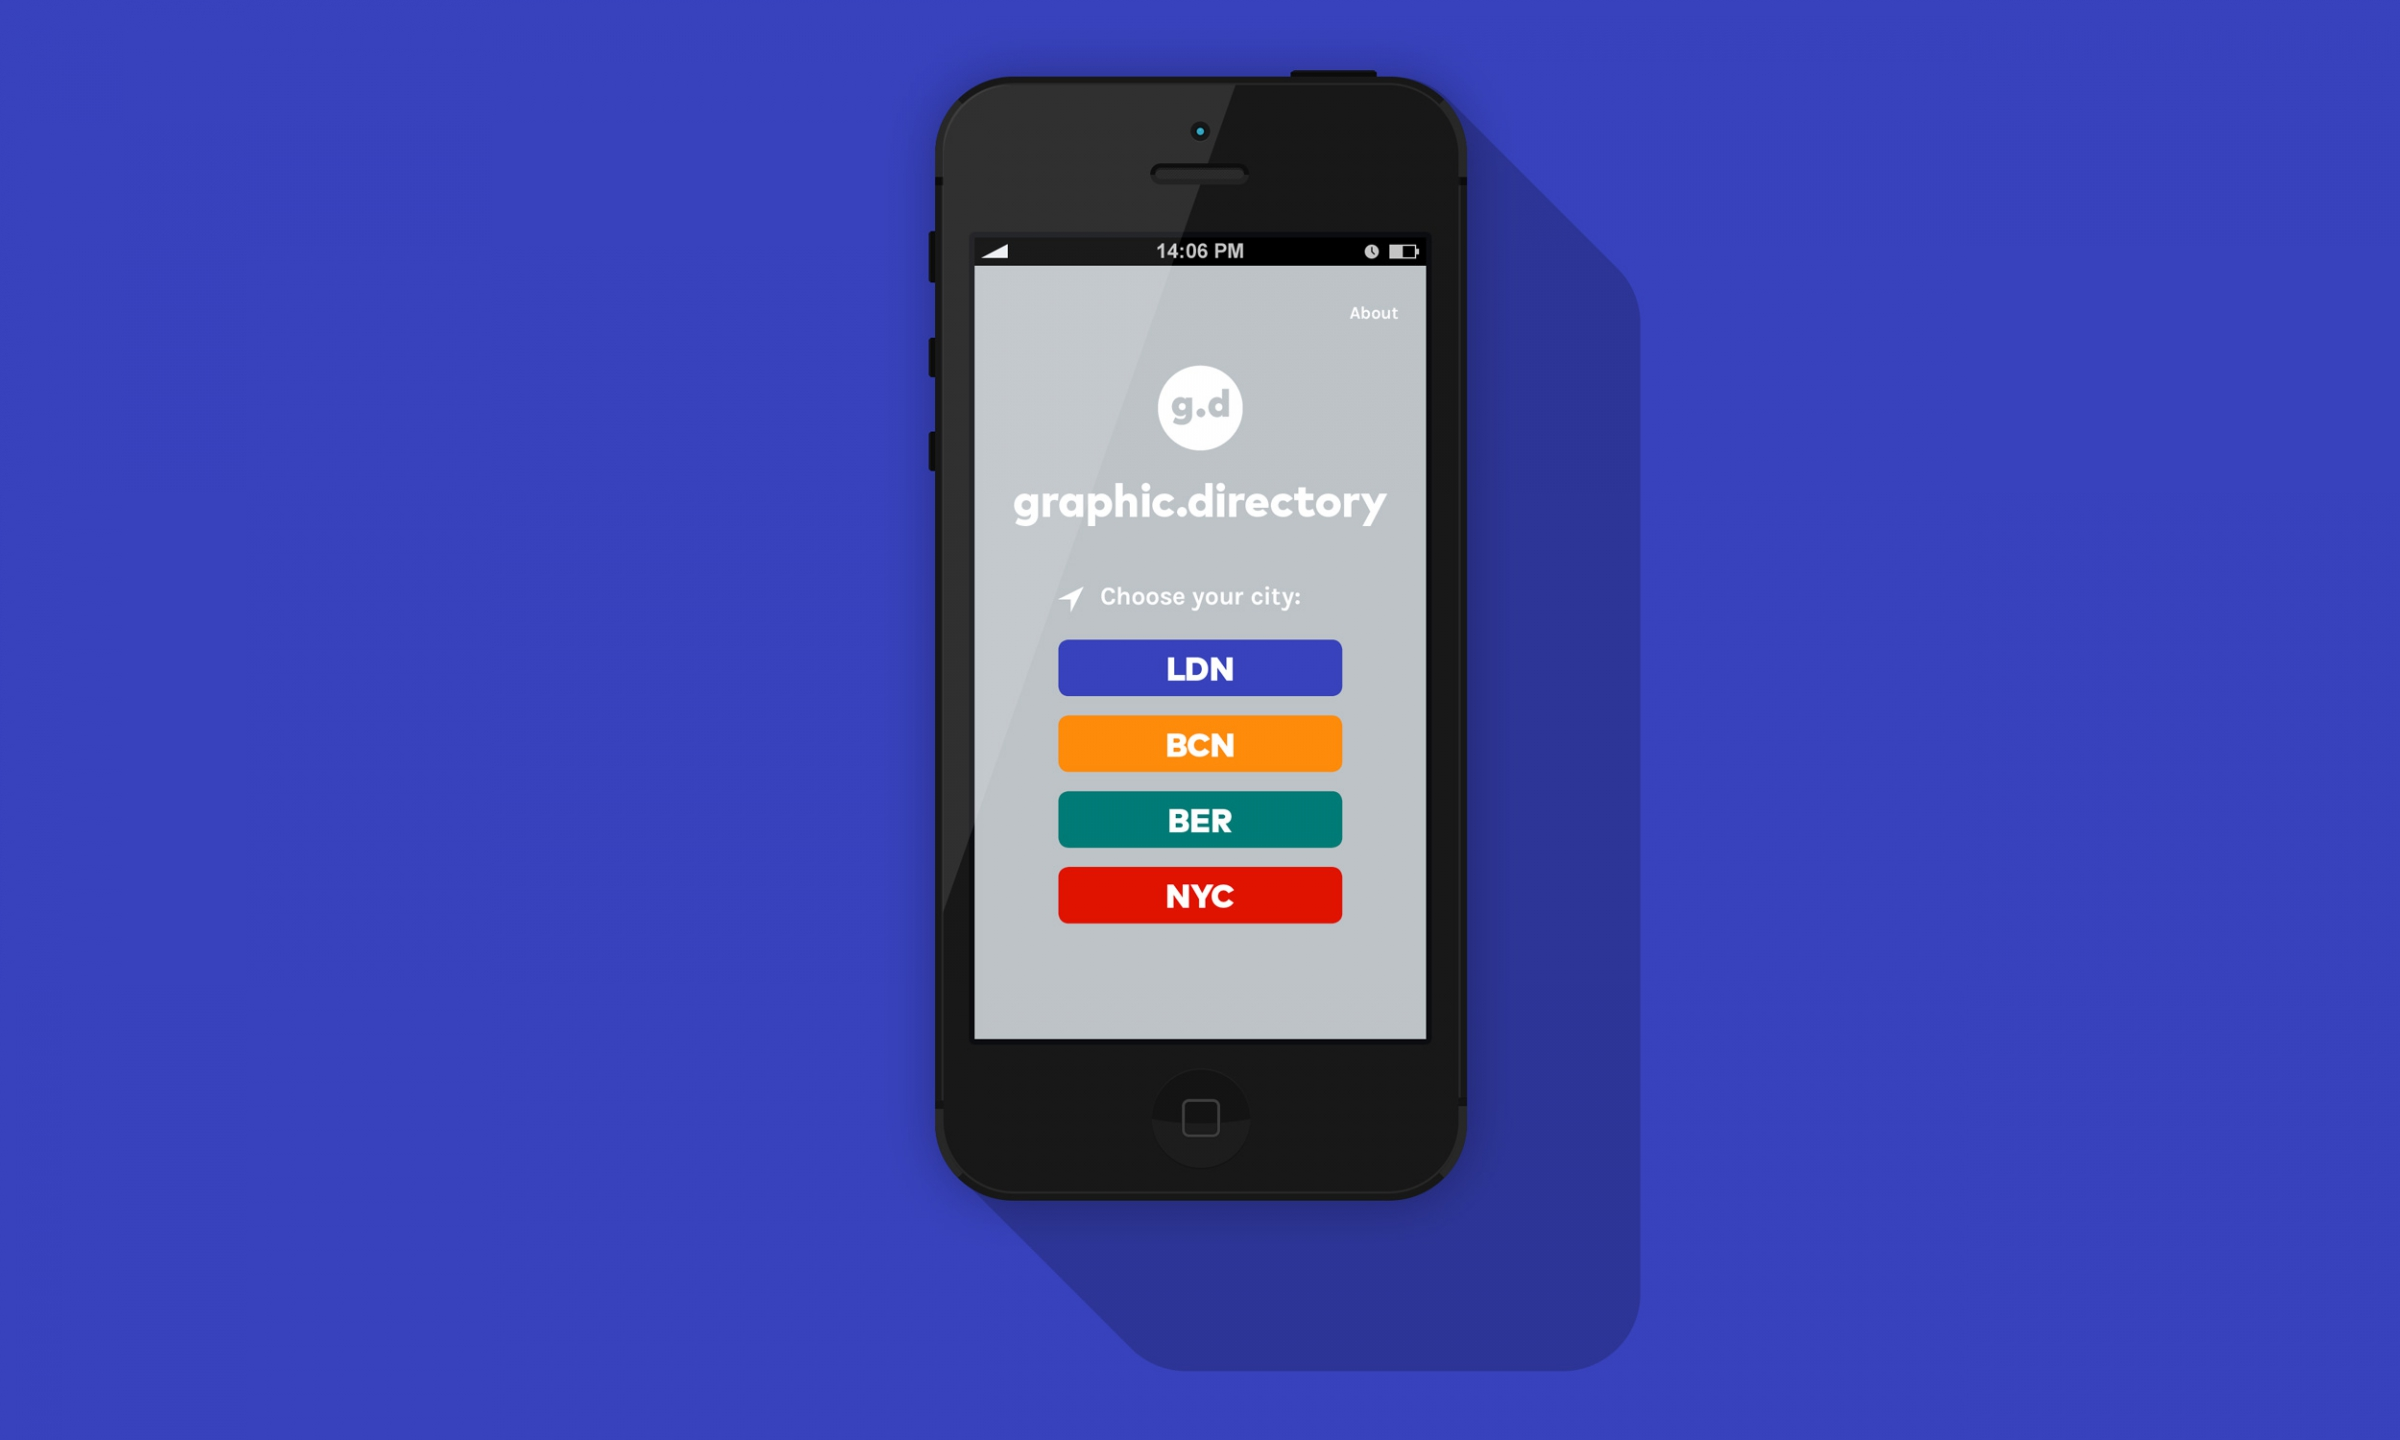 Graphic.directory App